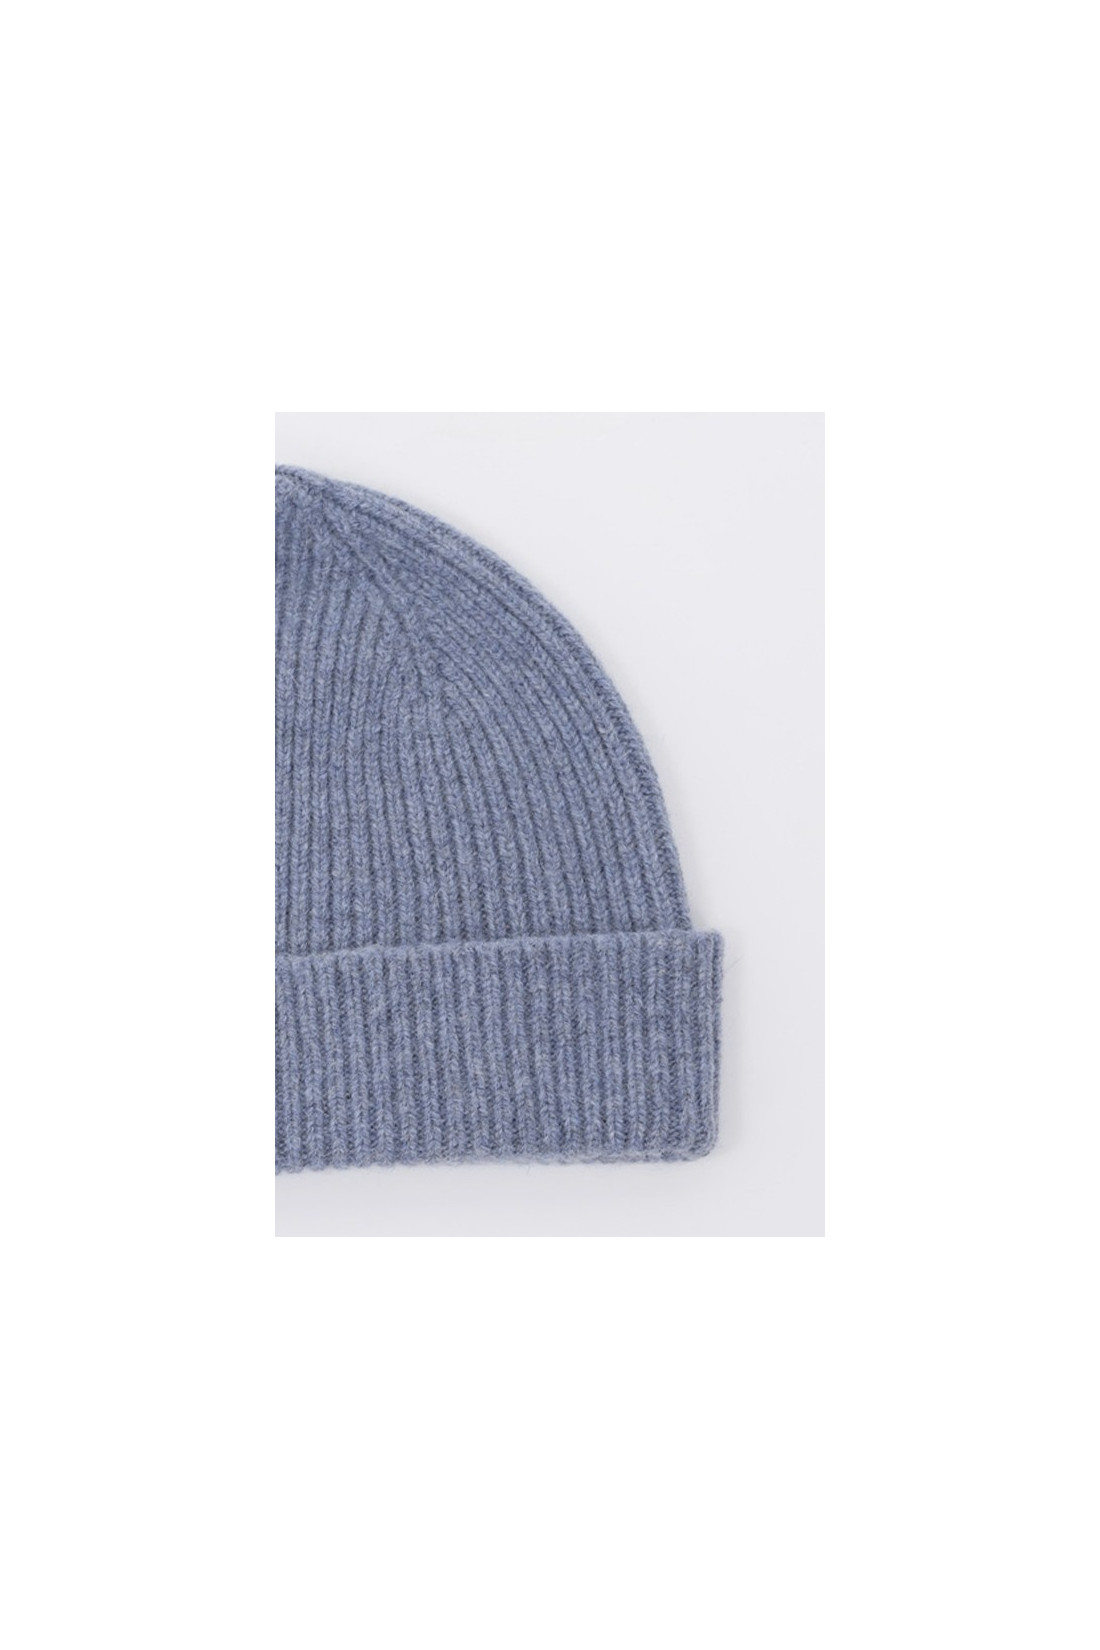 MACKIE / Barra hat Denim